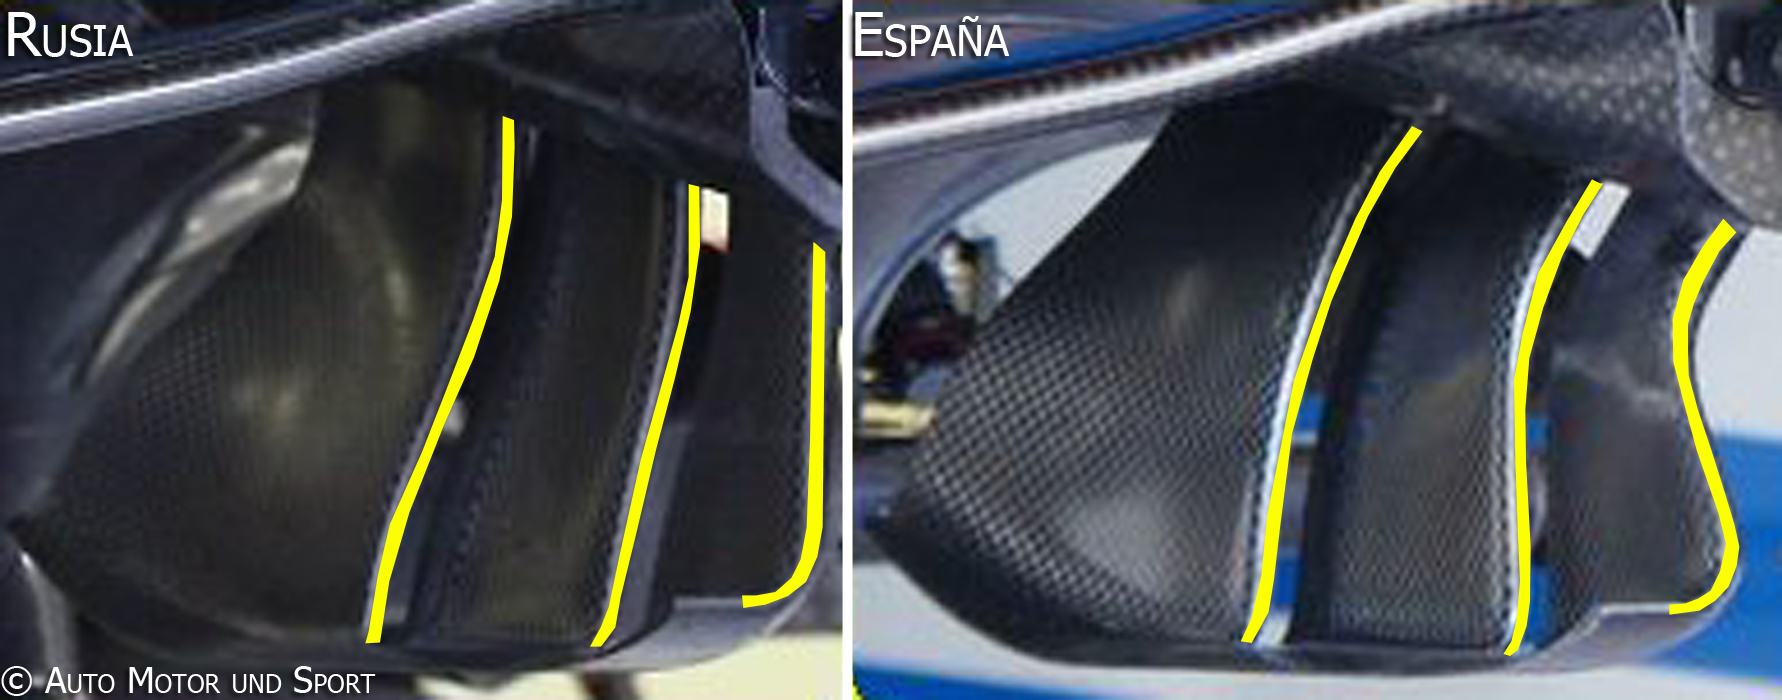 mrt05-turning-vanes(2)